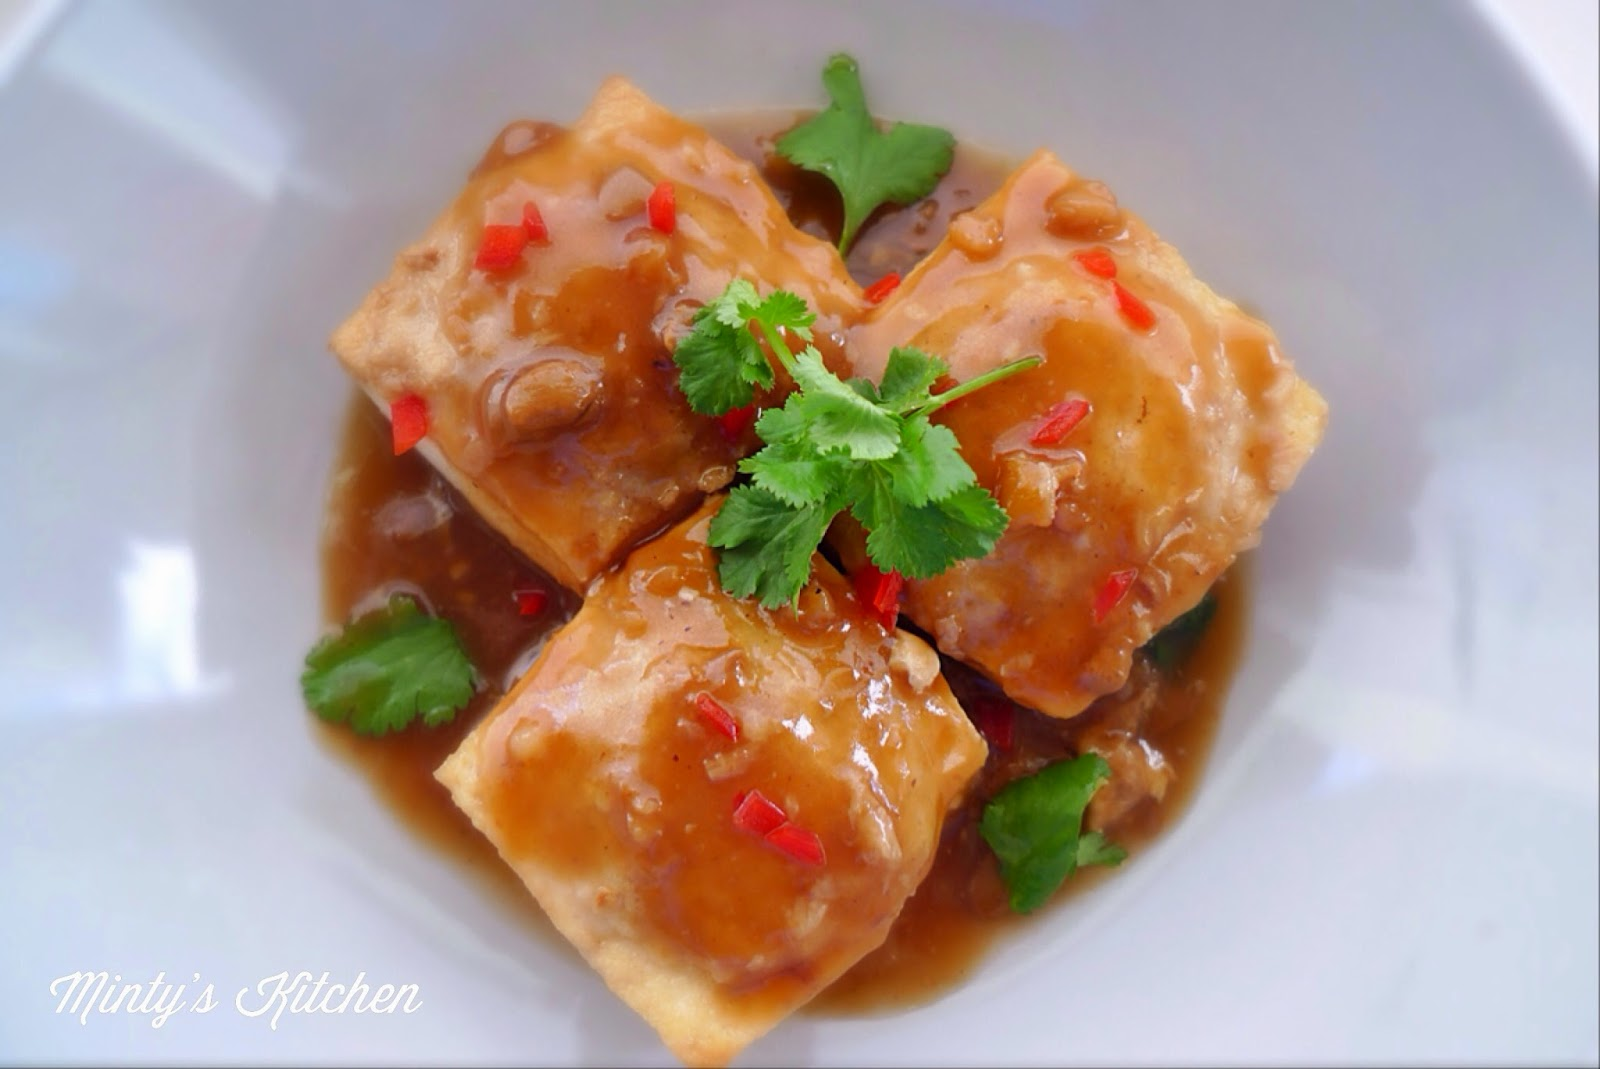 Stuffed Tofu  (客家酿豆腐)